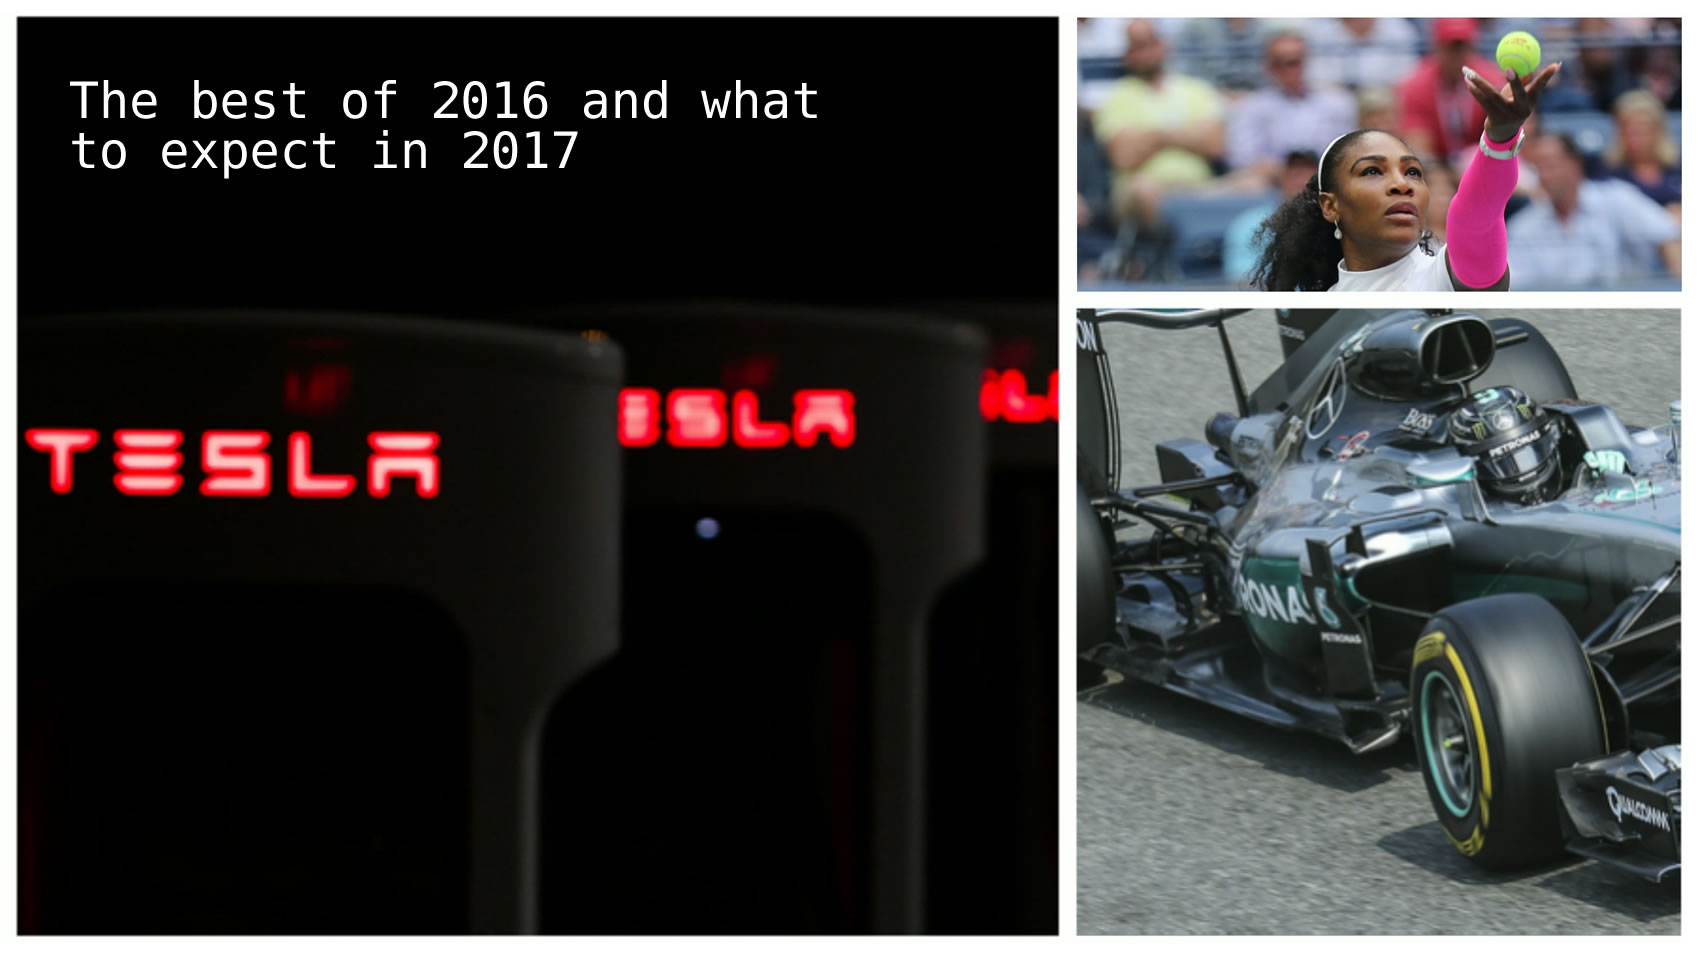 The best of 2016 and what to expect in 2017- Nico Rosberg driving in 2016 - Copyright: Cristiano Barni / Shutterstock.com. Tesla charging stations -  Copyright: Jag_cz / Shutterstock.com.  Serena Williams in action in 2016 -  Copyright:Leonard Zhukovsky / Shutterstock.com.